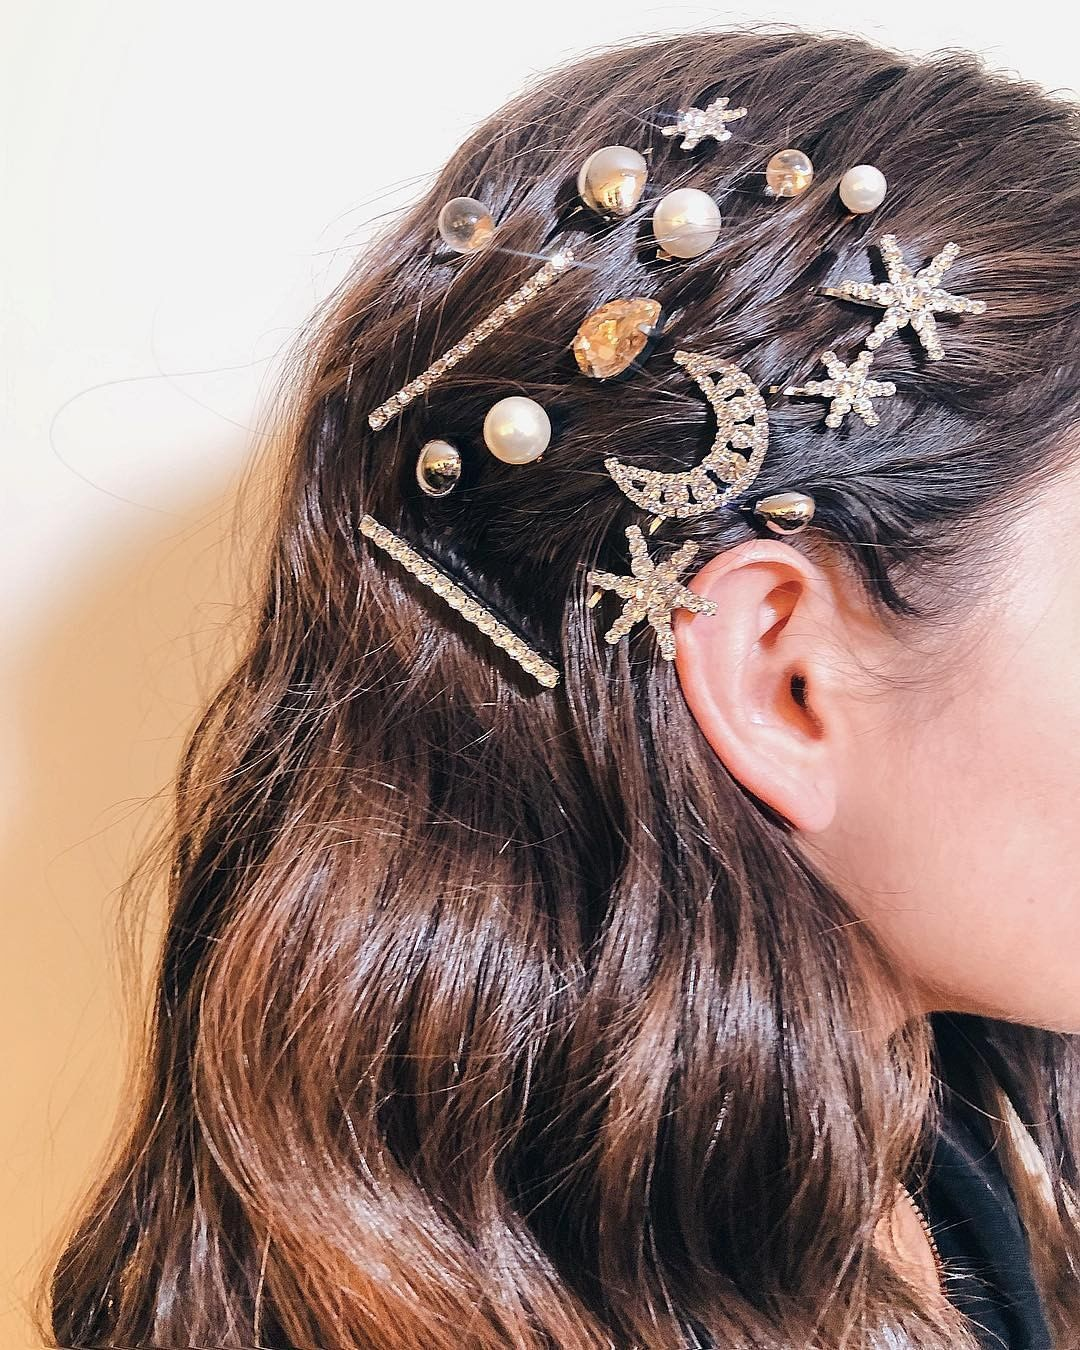 33 Easy Ways To Style Your Hair With Hair Clips - hair down, straight hairstyle ,simple hairstyle #hairstyle #hairclips #updo messy bun